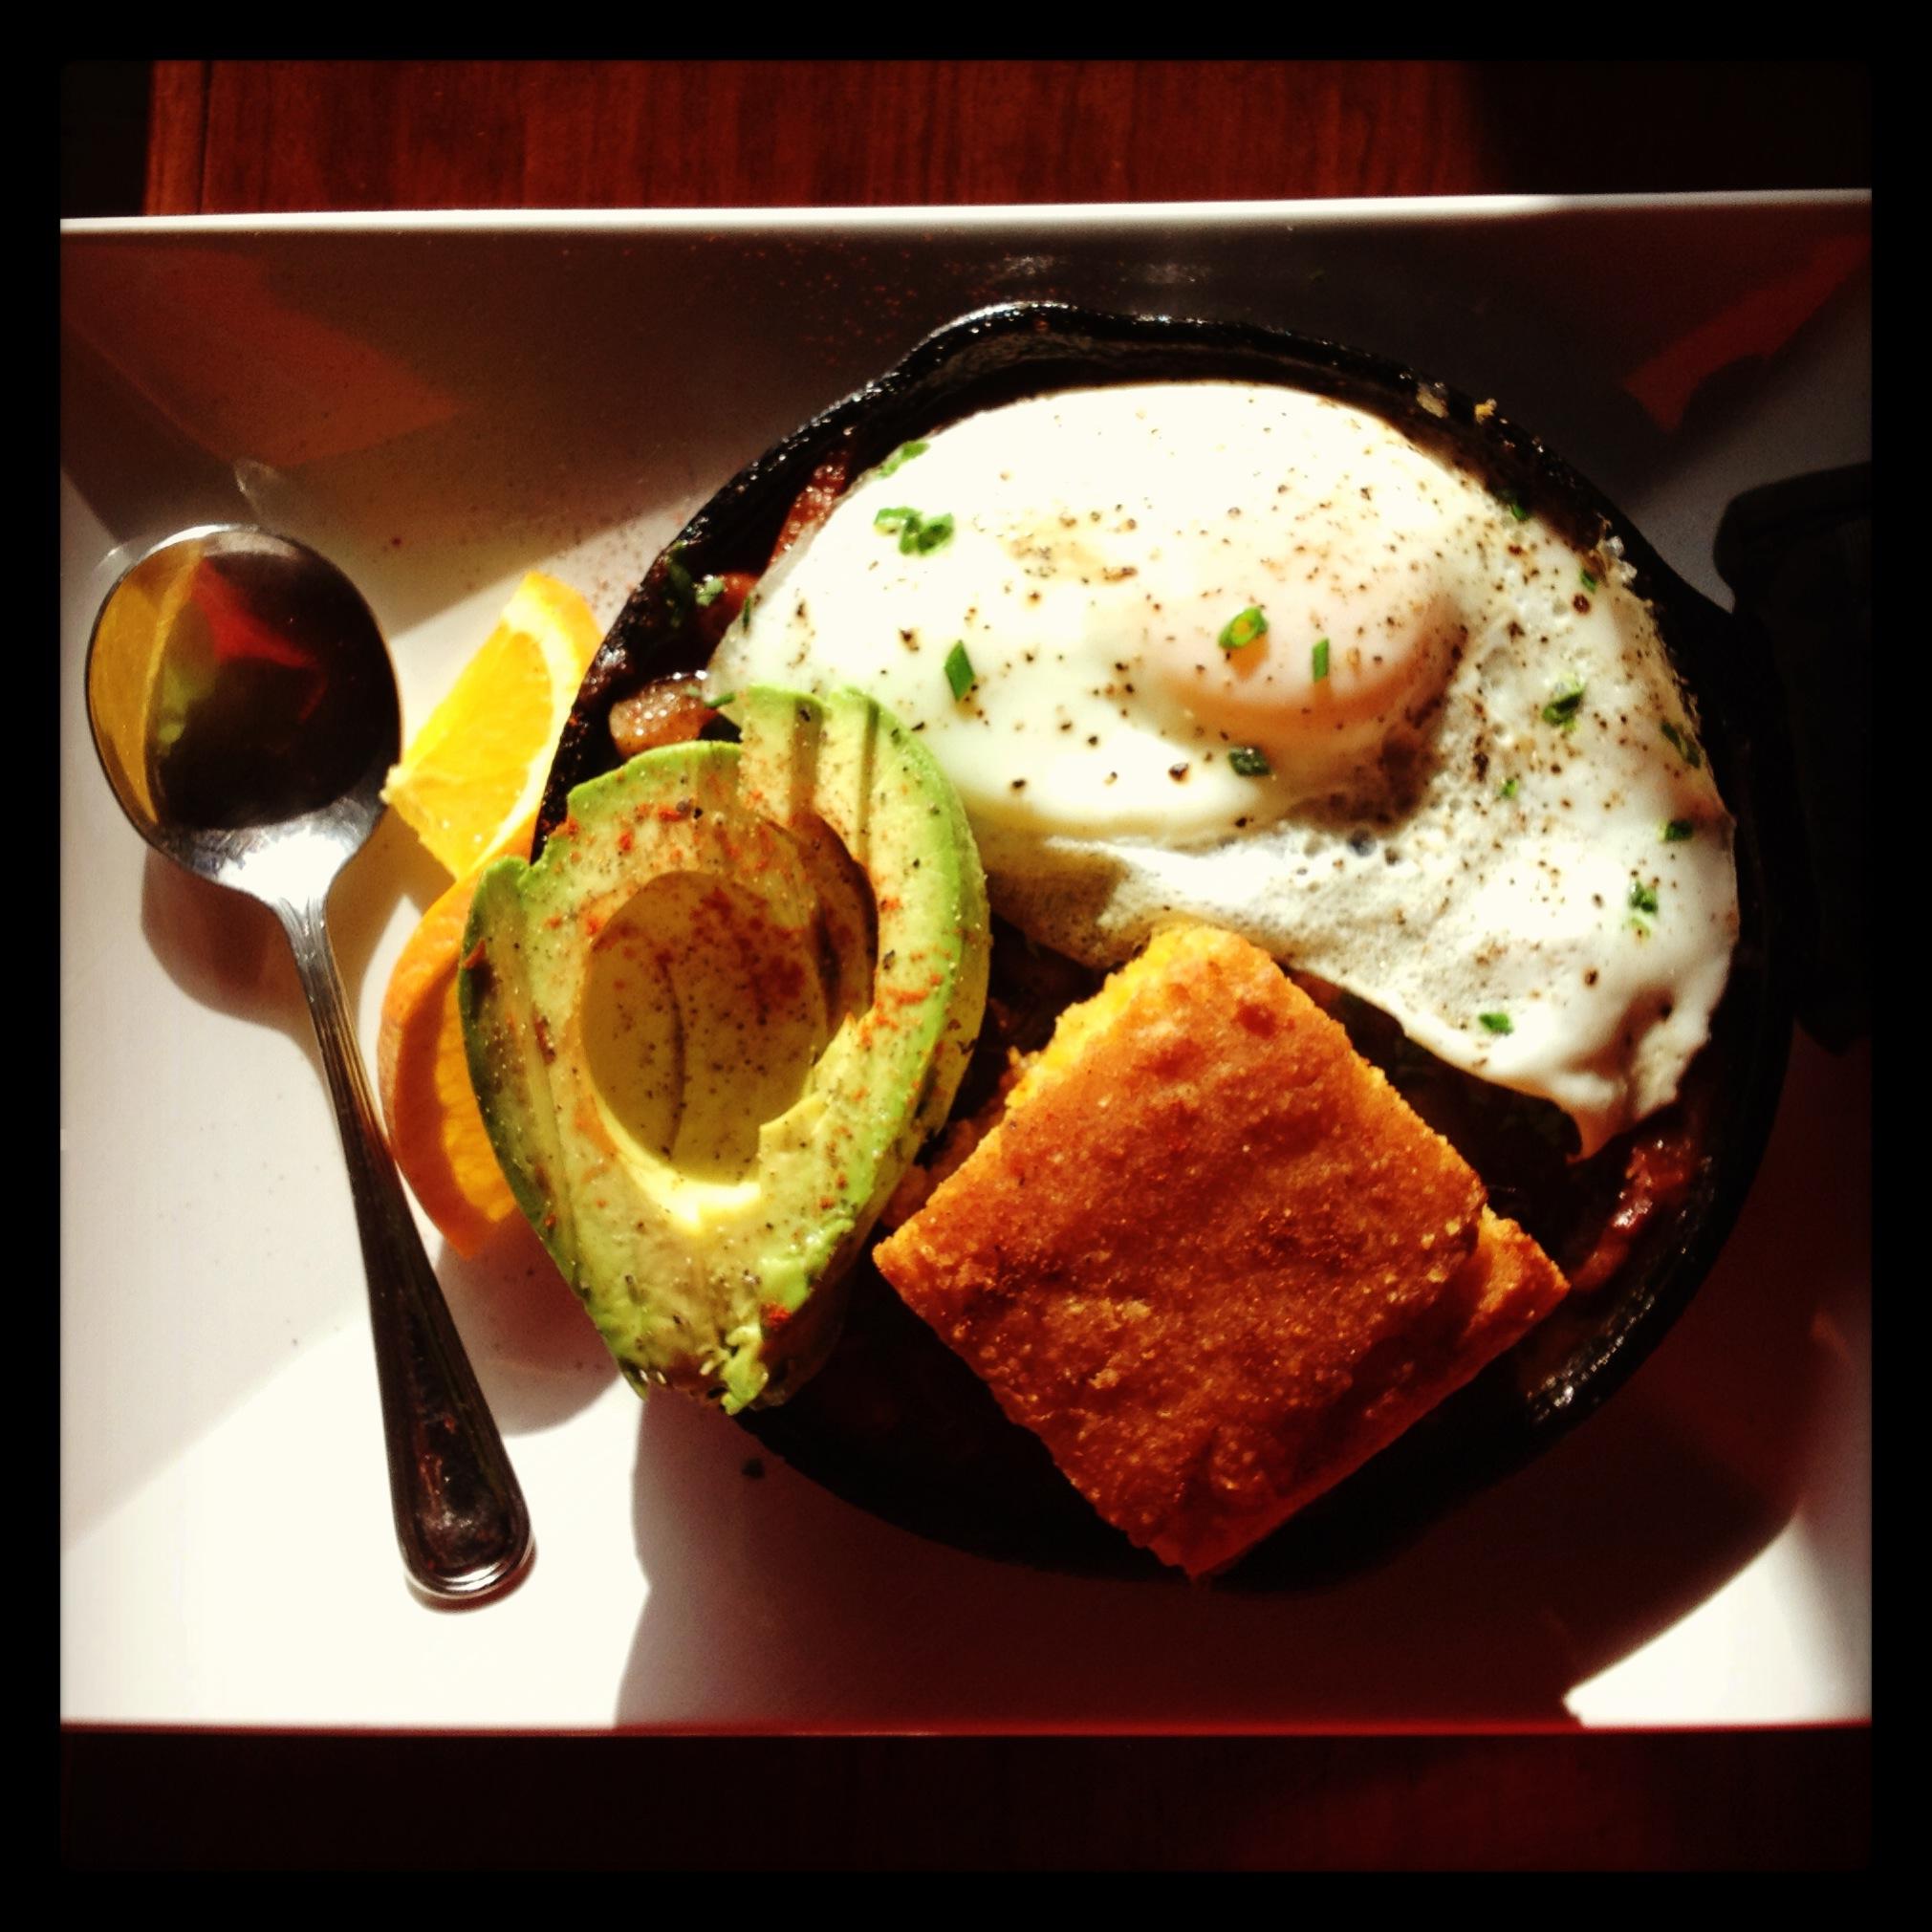 Delicious breakfast of chilli, fried egg, and cornbread at